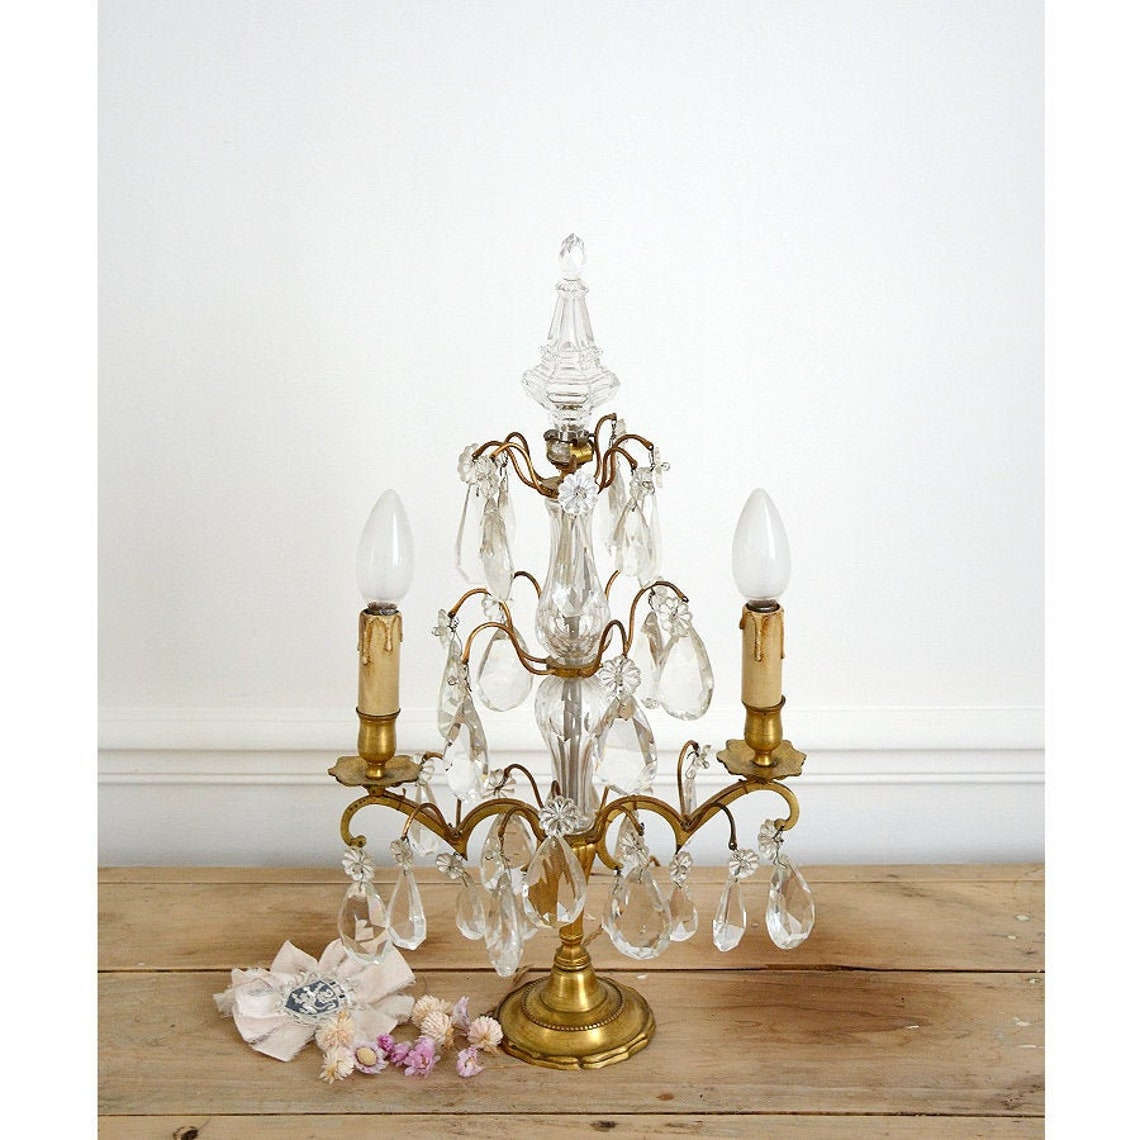 Vintage French Crystal Lamp with lampshades/ Chandelier / Girandole - Eclairage